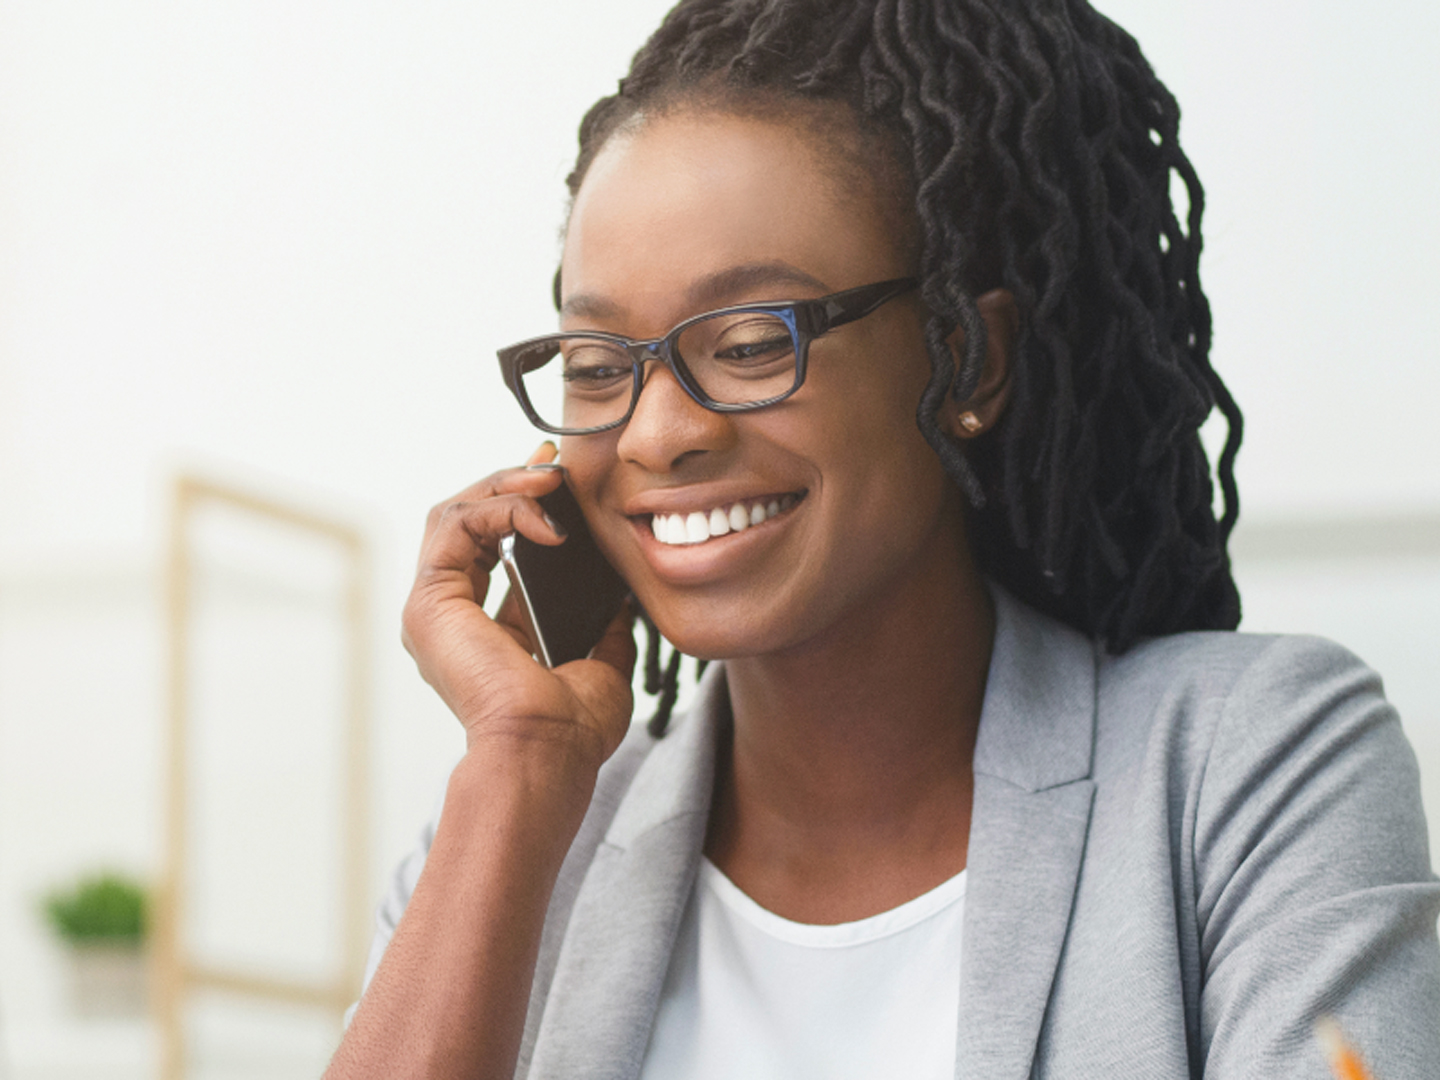 Woman wearing glasses smiling holding mobile phone.